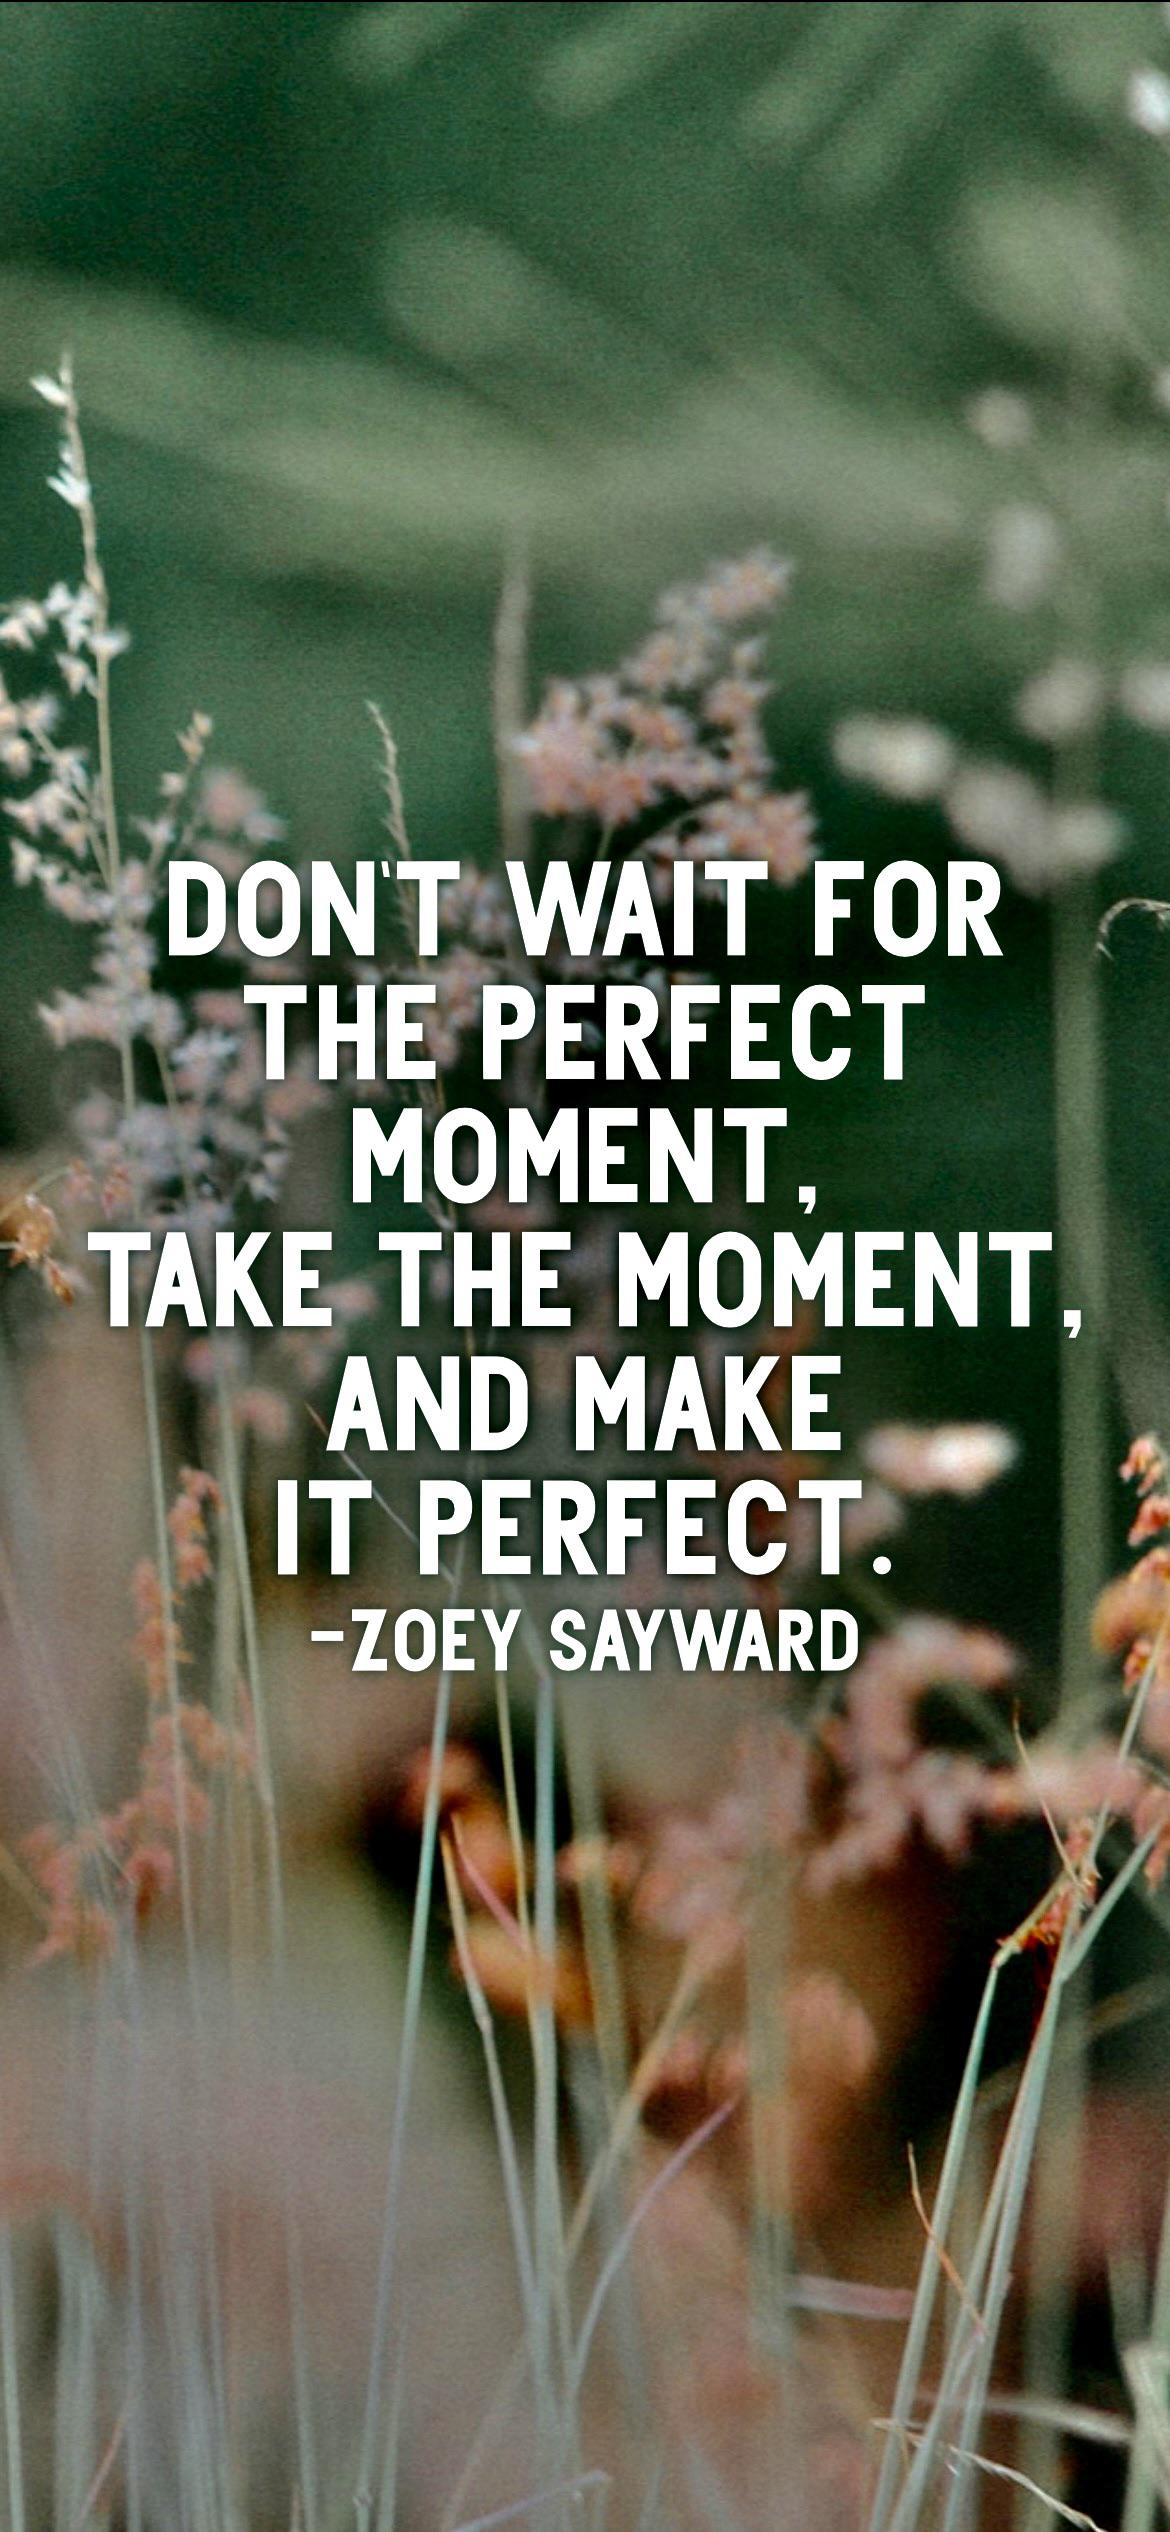 Don't wait for the perfect moment, take the moment, and make it perfect. -Zoey Sayward [2532 x 1170p]